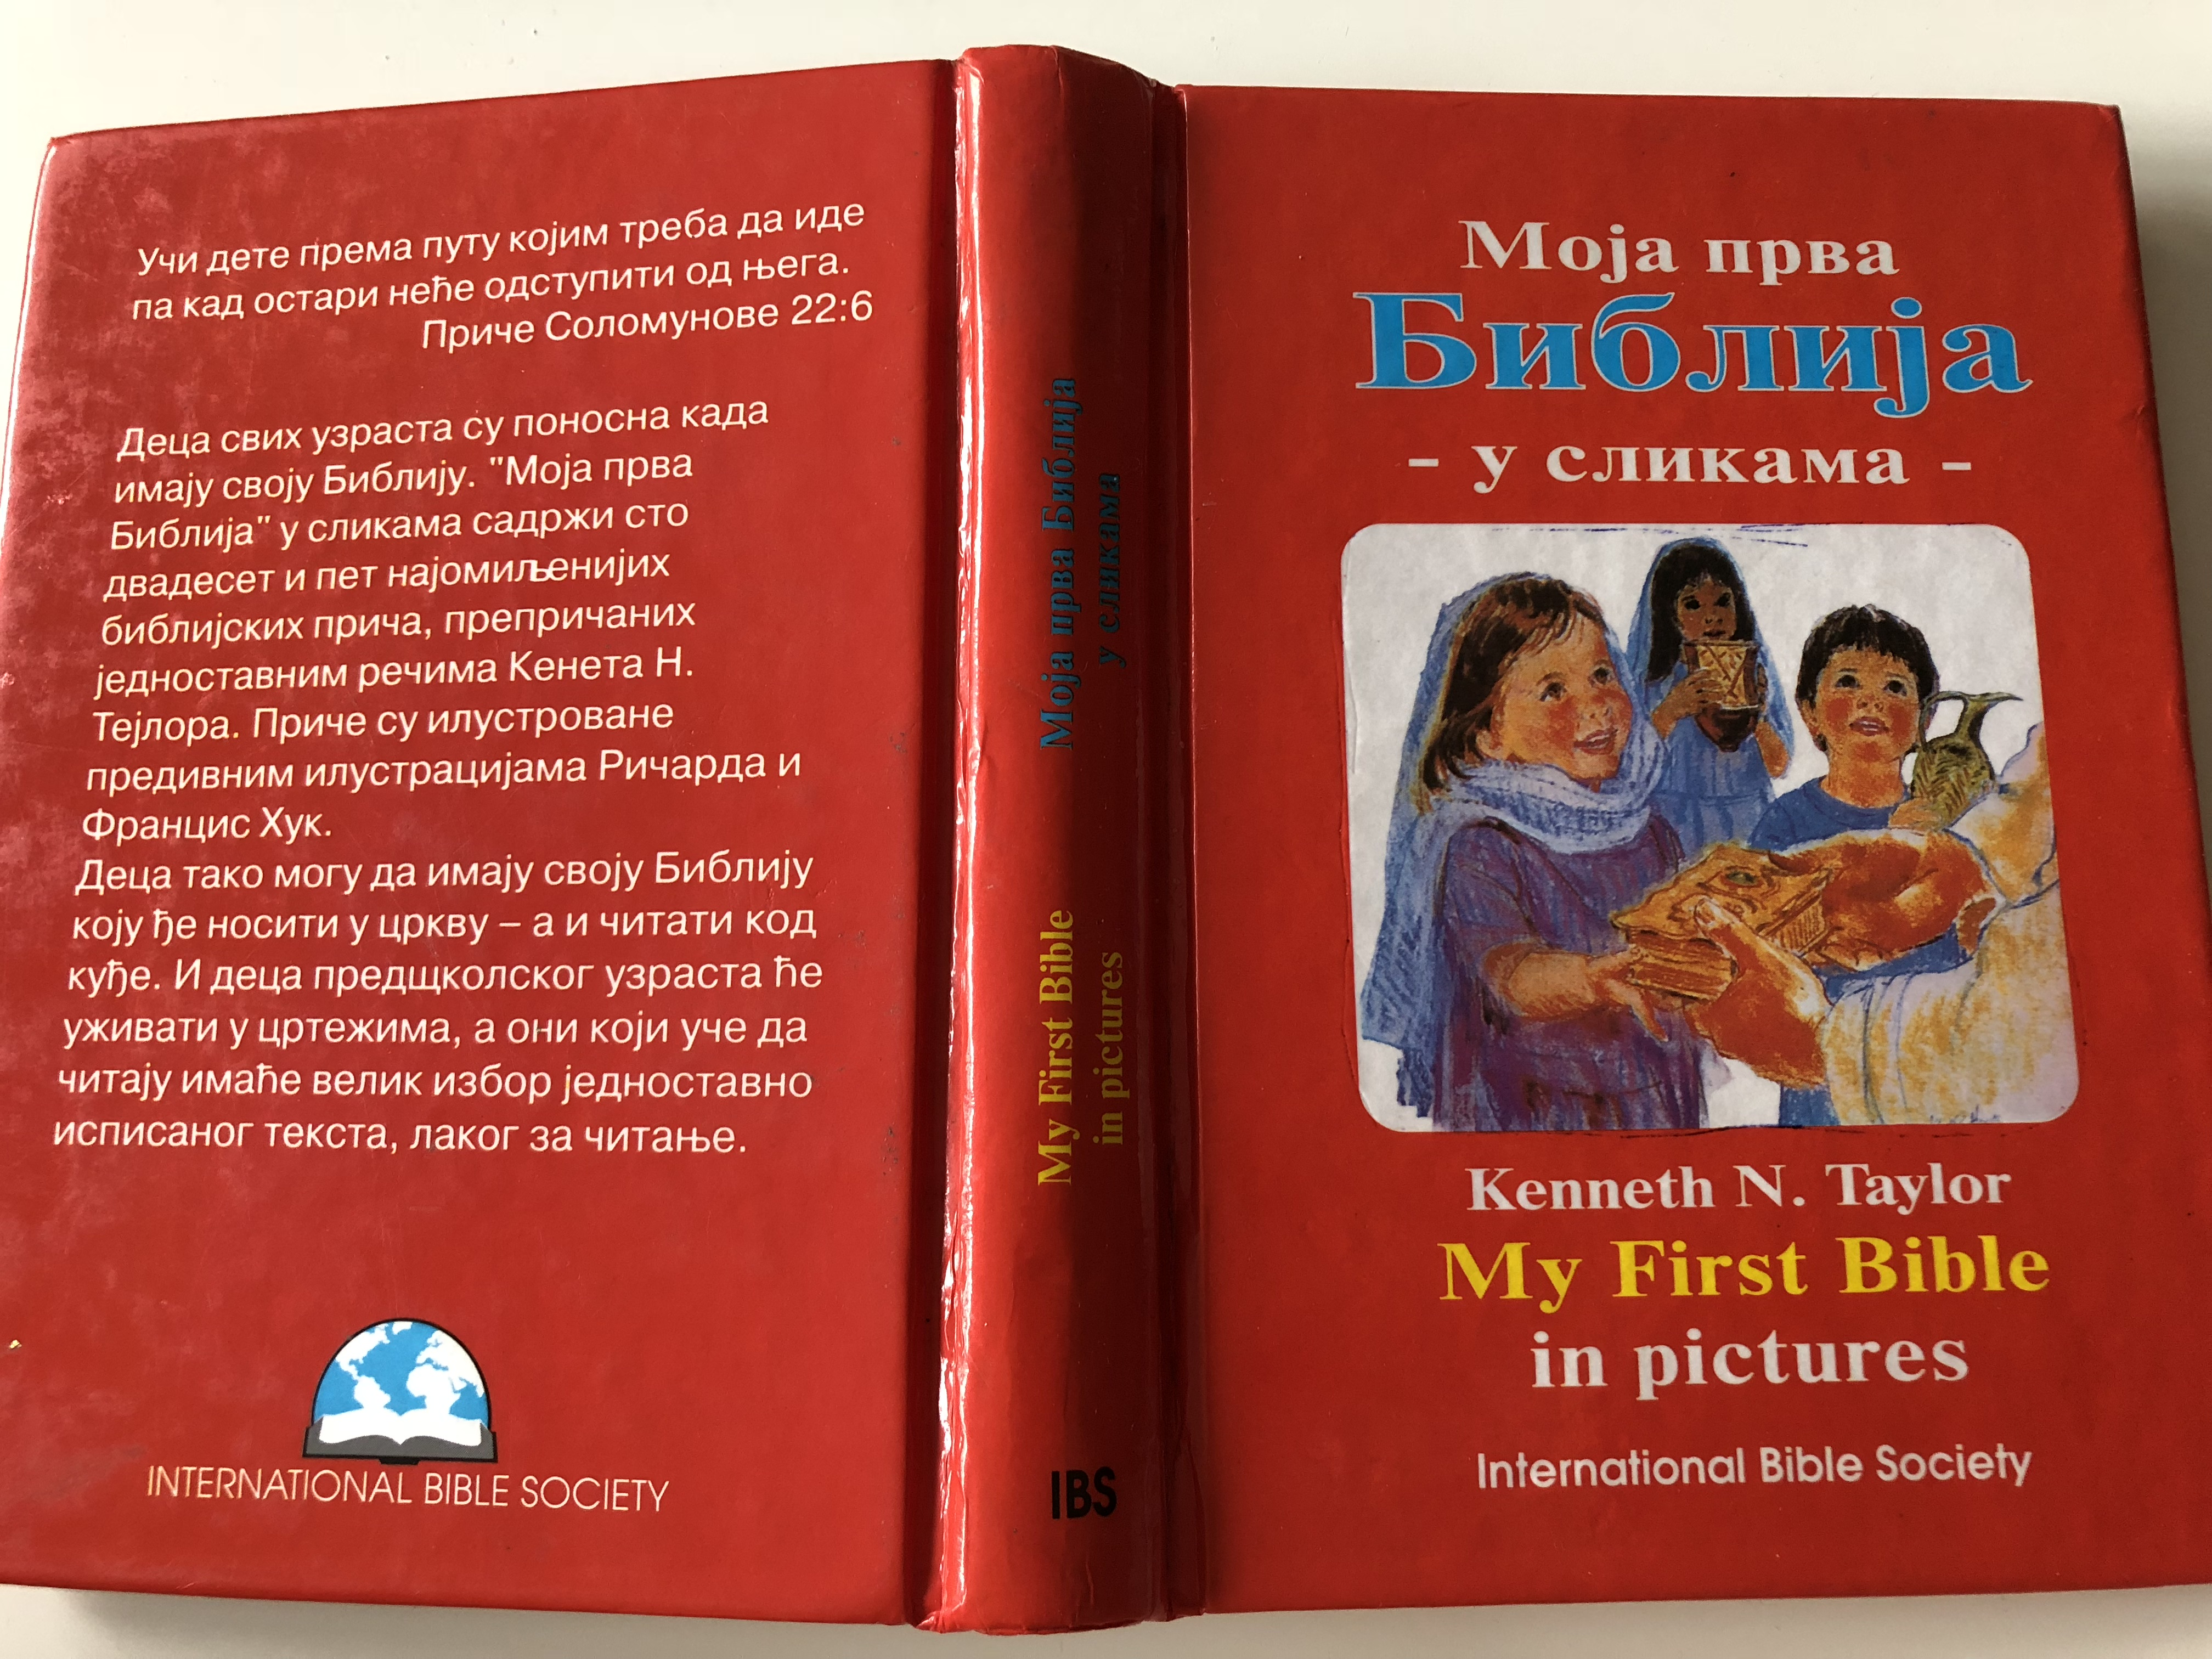 serbian-my-first-bible-in-pictures-14-.jpg